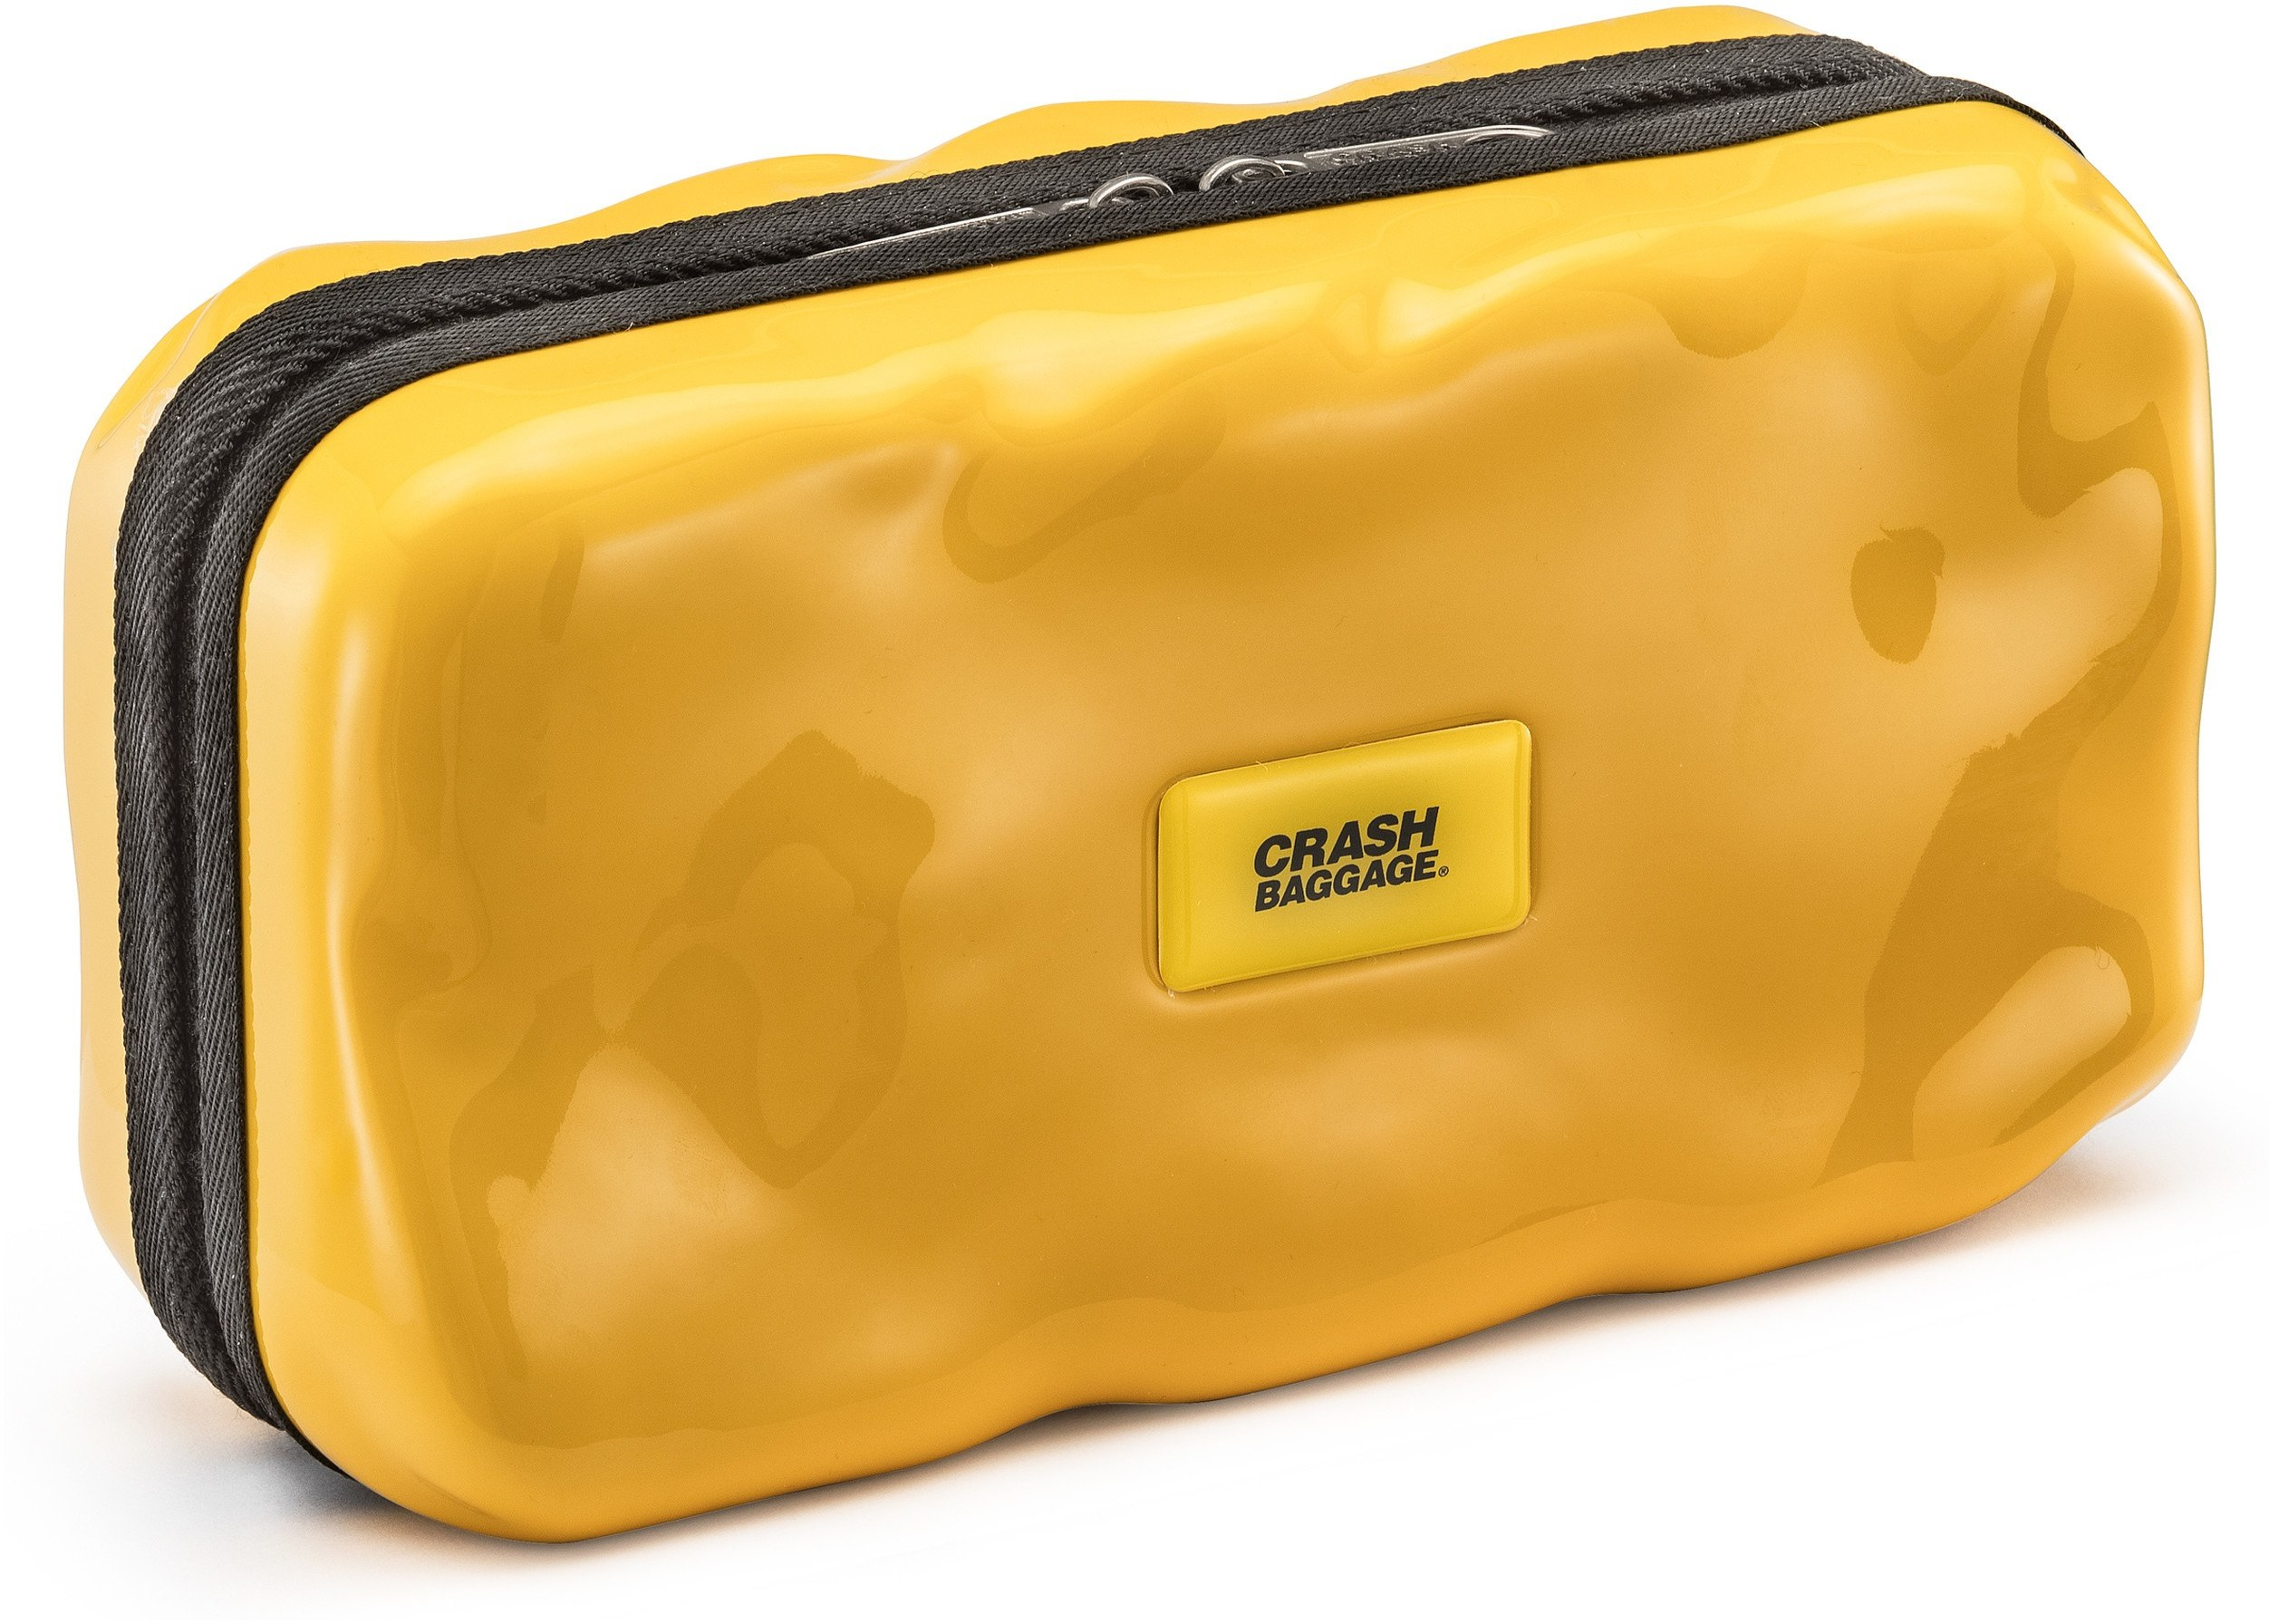 Crash Baggage Kosmetyczka Crash Baggage Yellow CB370.04